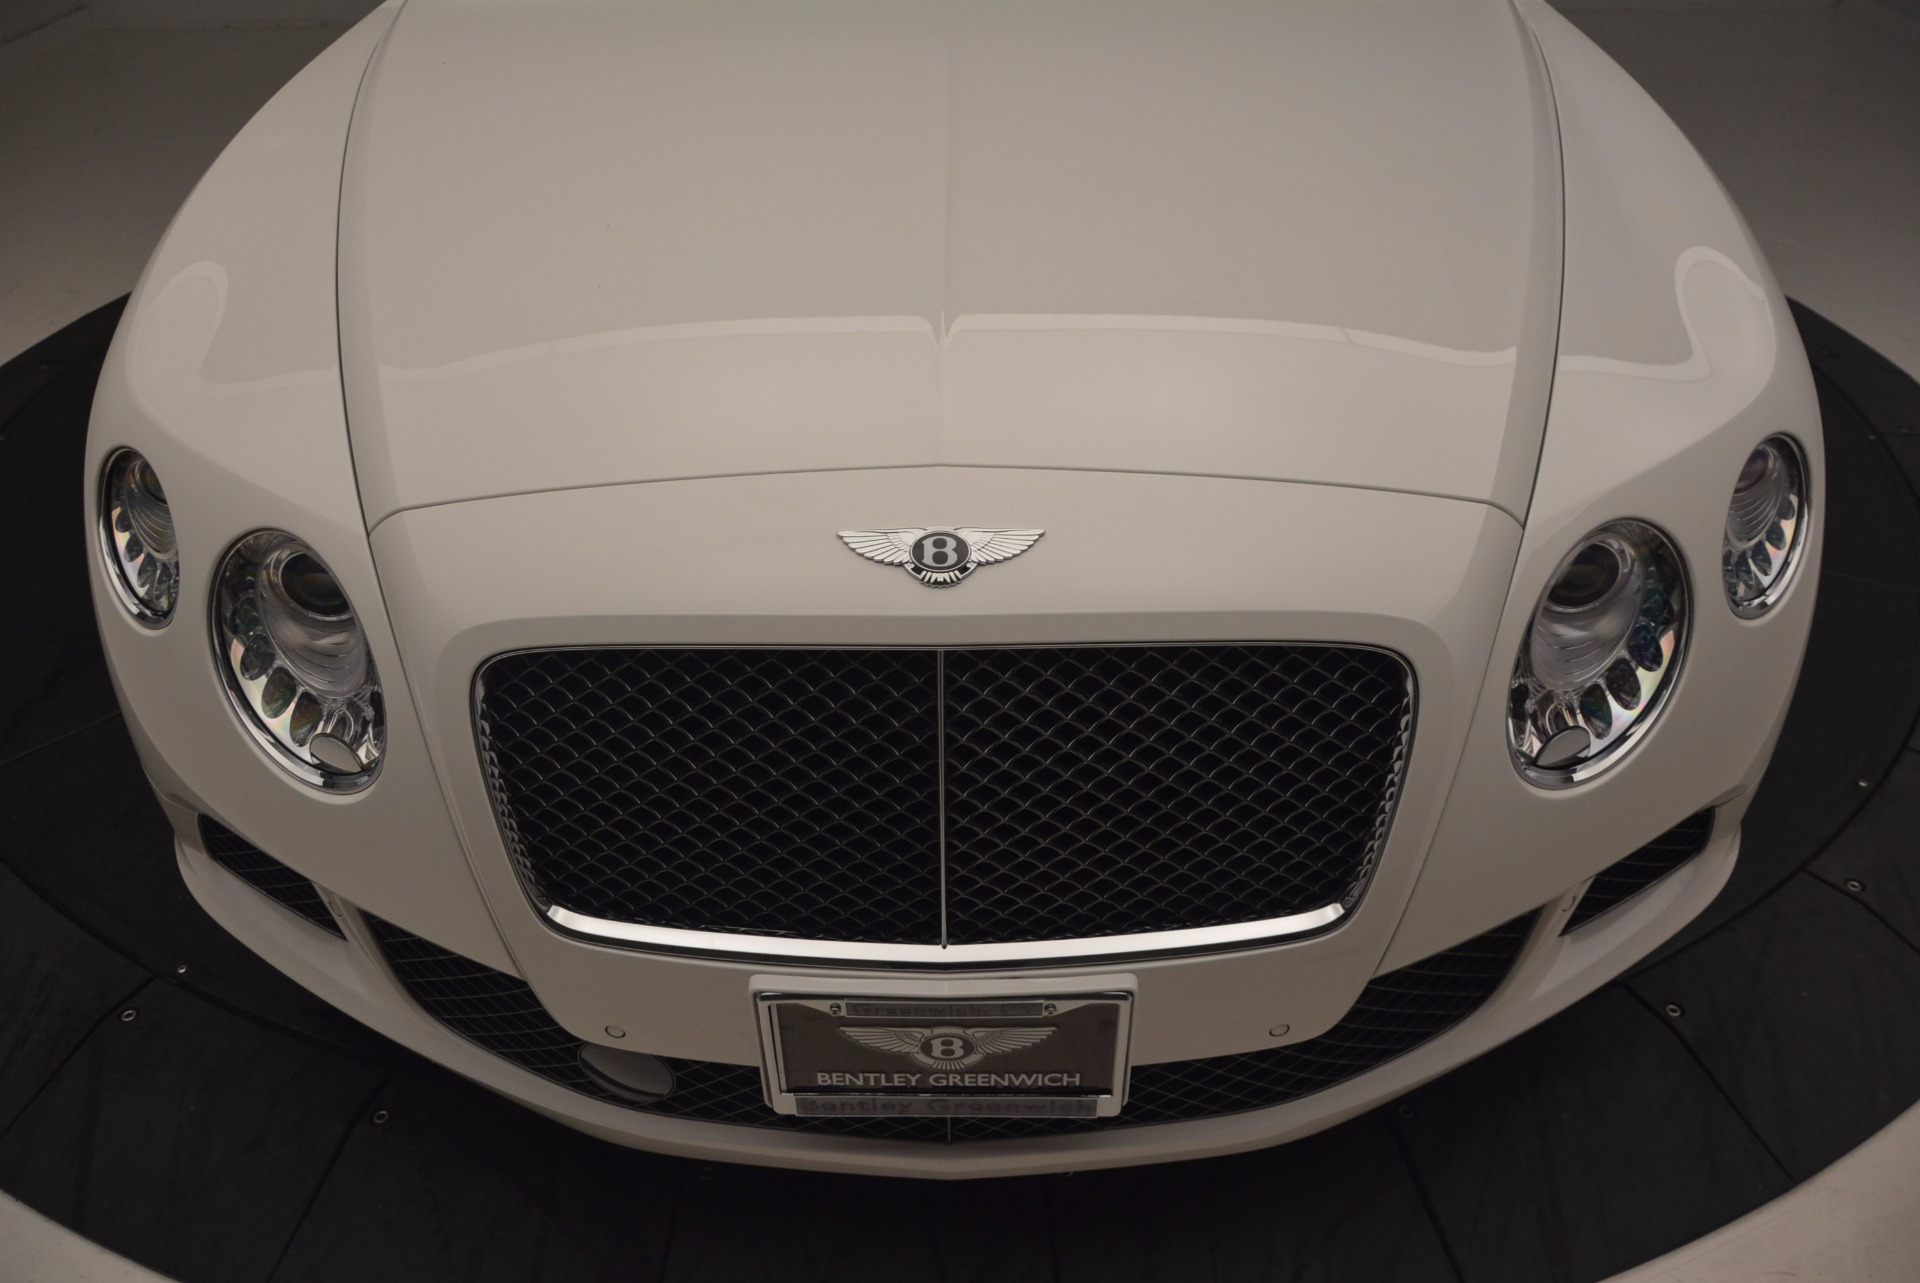 Used 2014 Bentley Continental GT Speed For Sale In Westport, CT 1102_p14